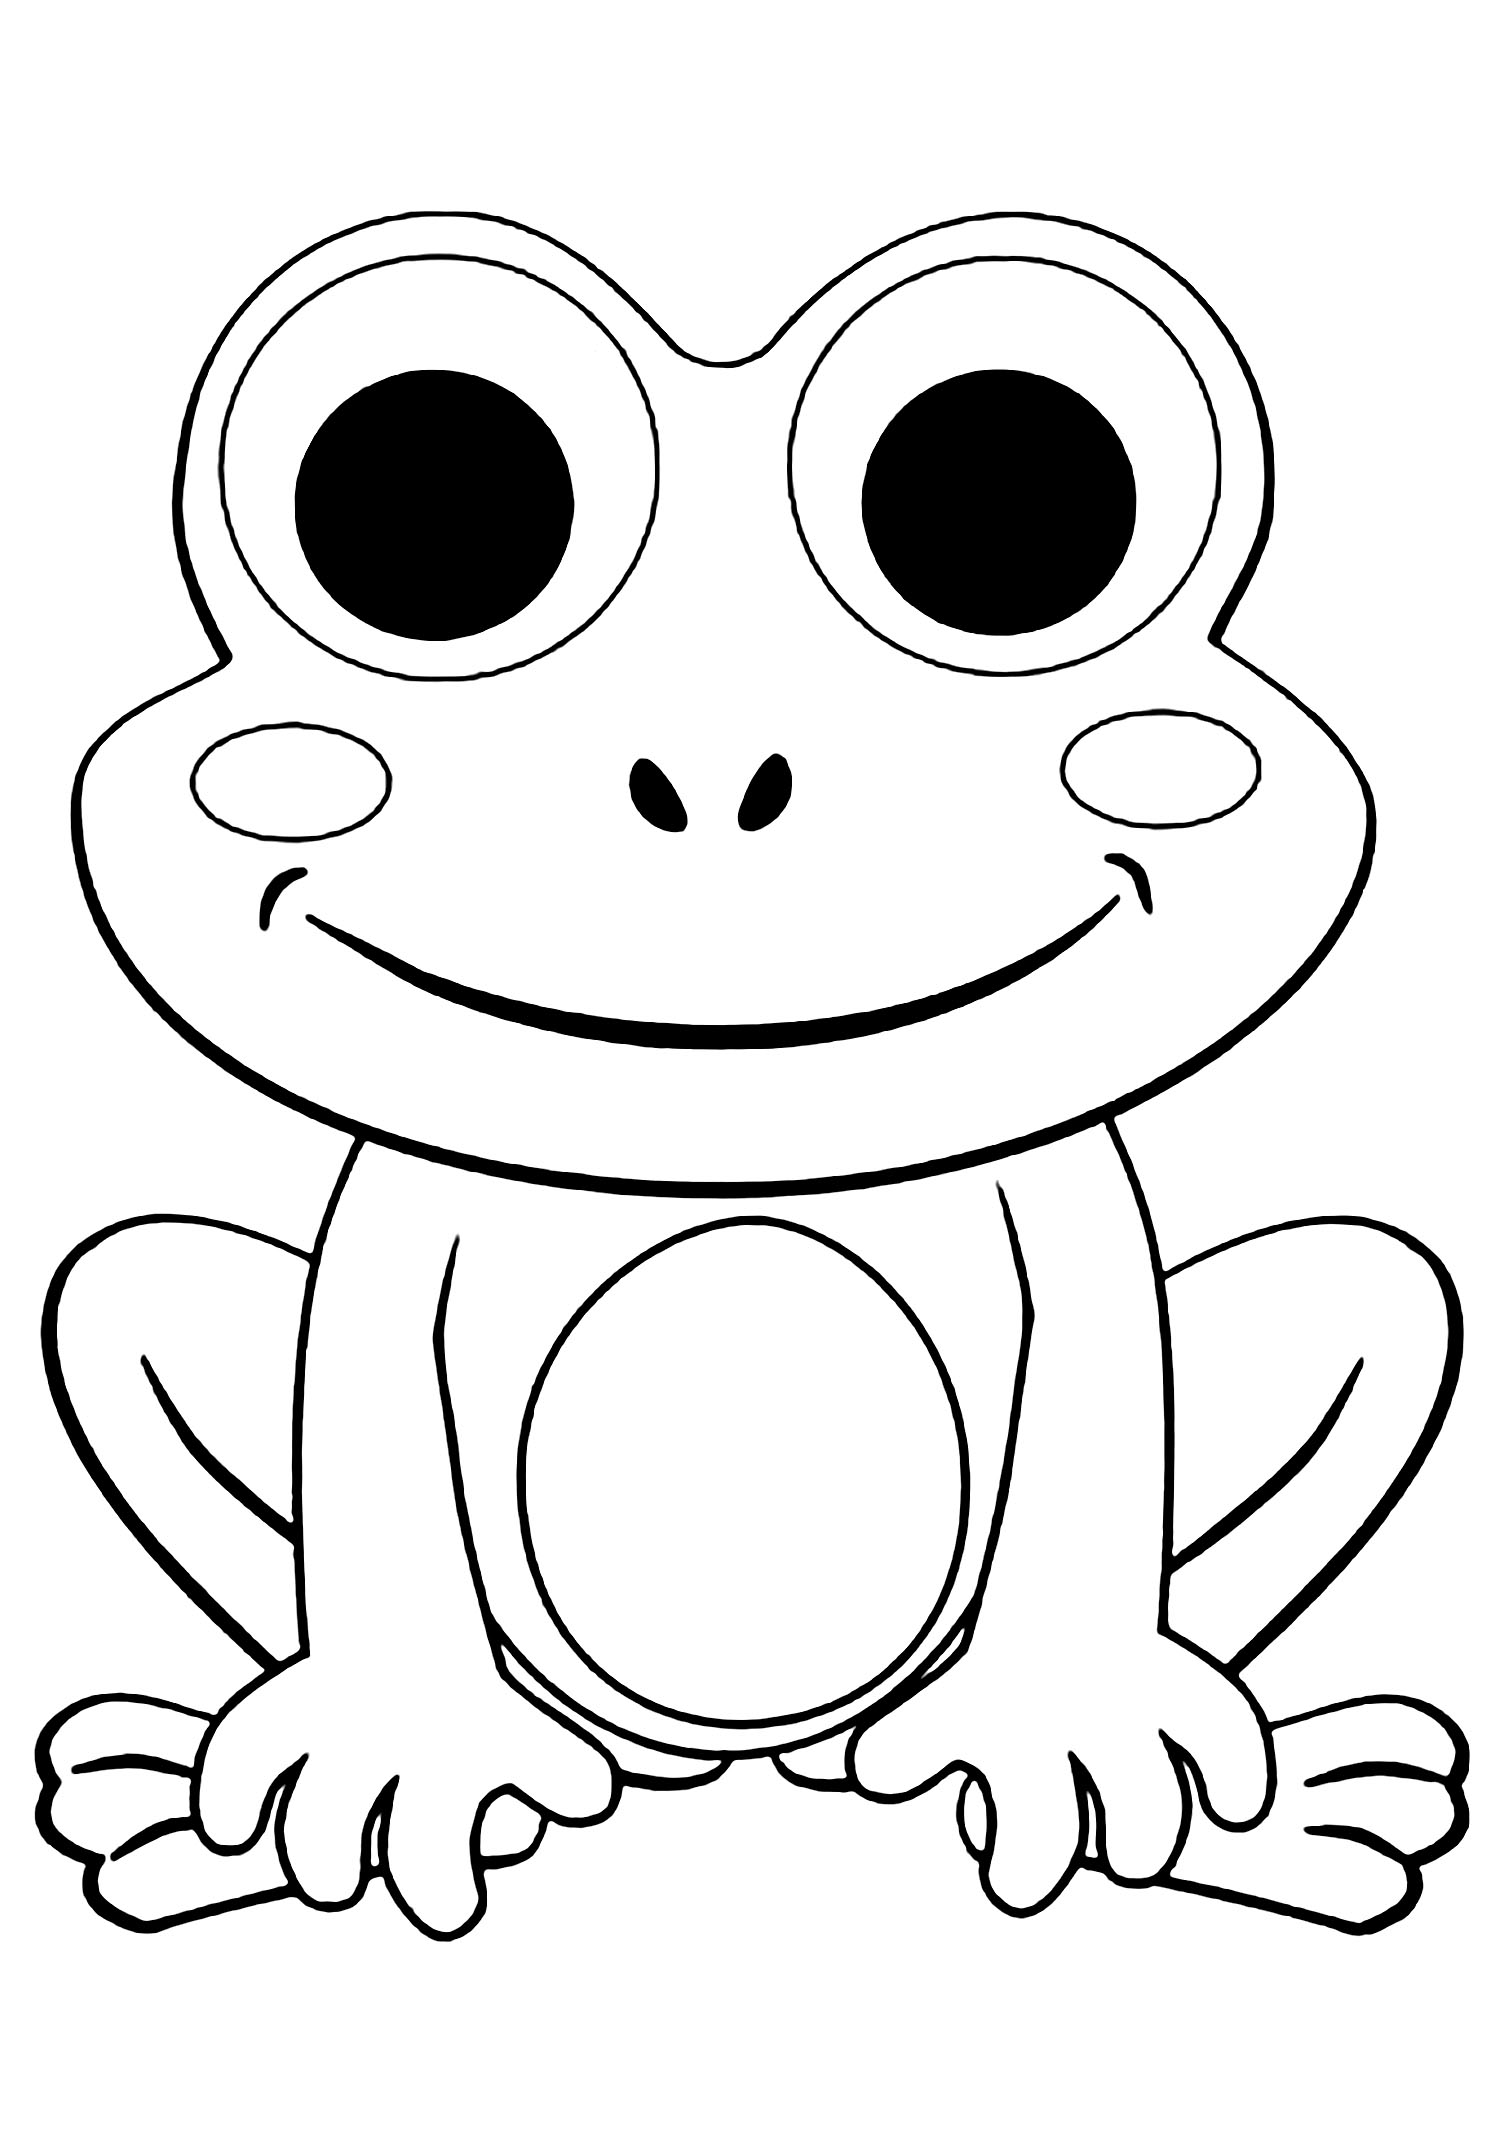 coloring book picture of a frog frogs coloring pages to download and print for free picture coloring book of frog a